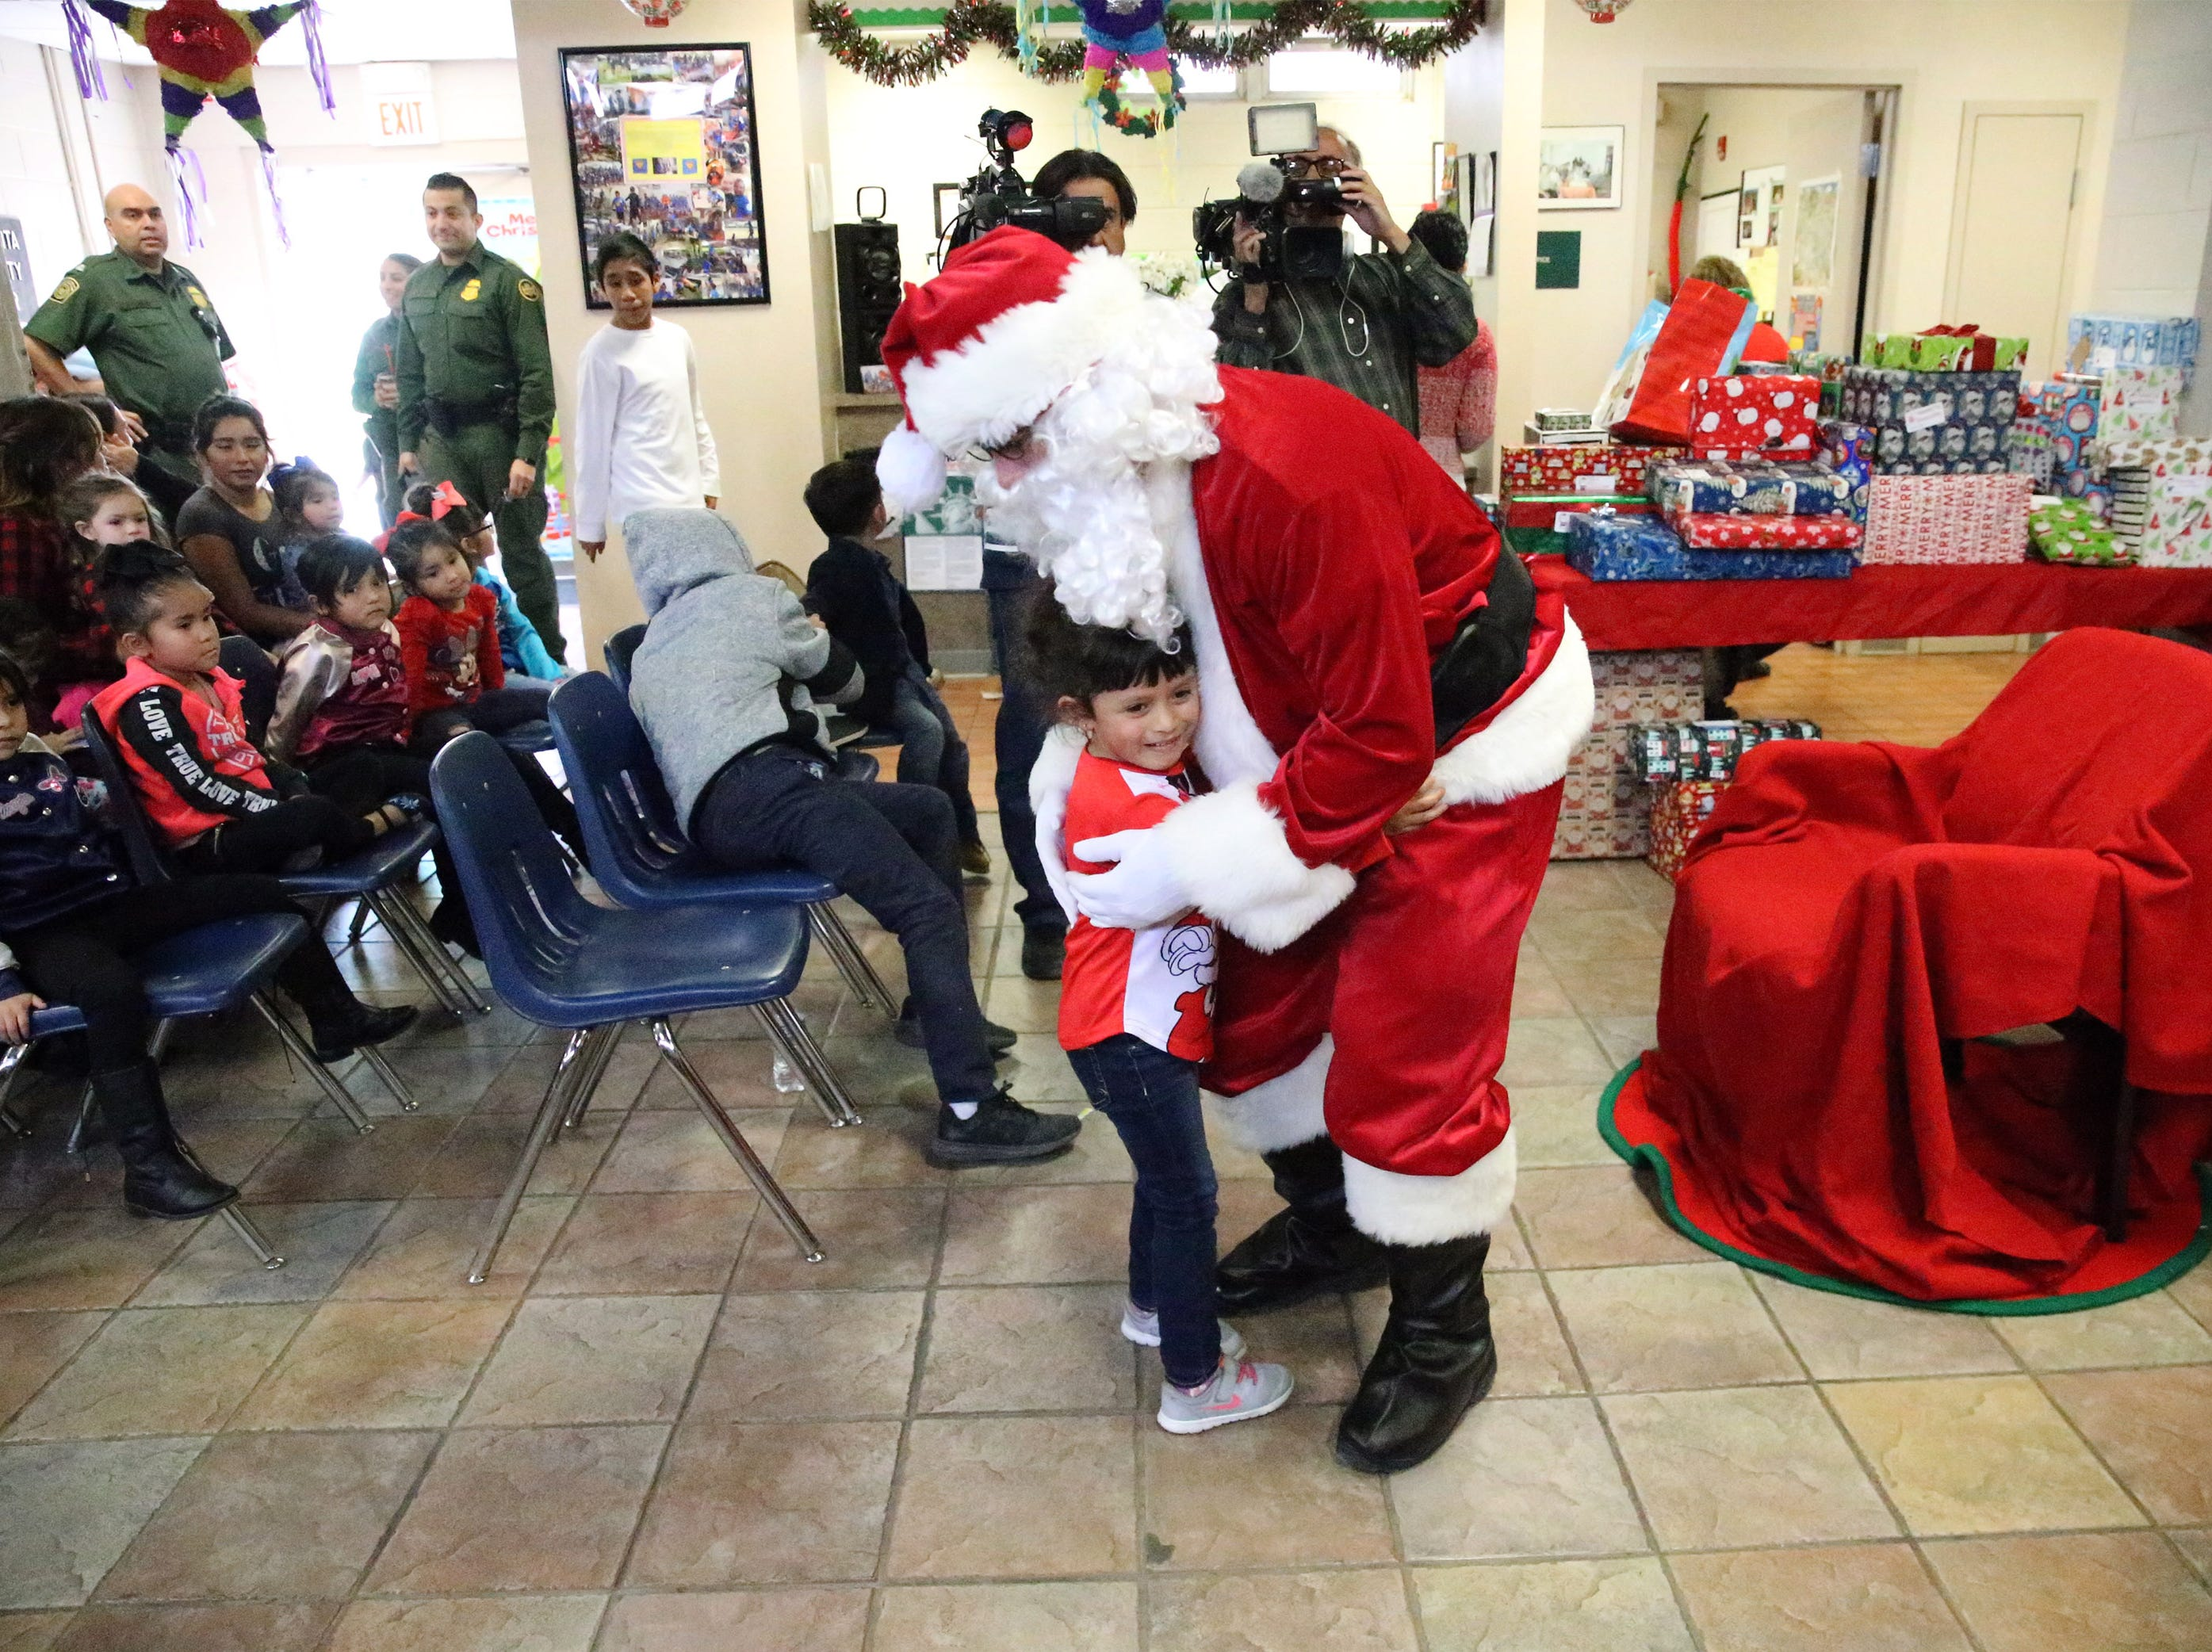 Children run up to greet Santa Clause upon his arrival at the Chihuahuita Community Center Friday.